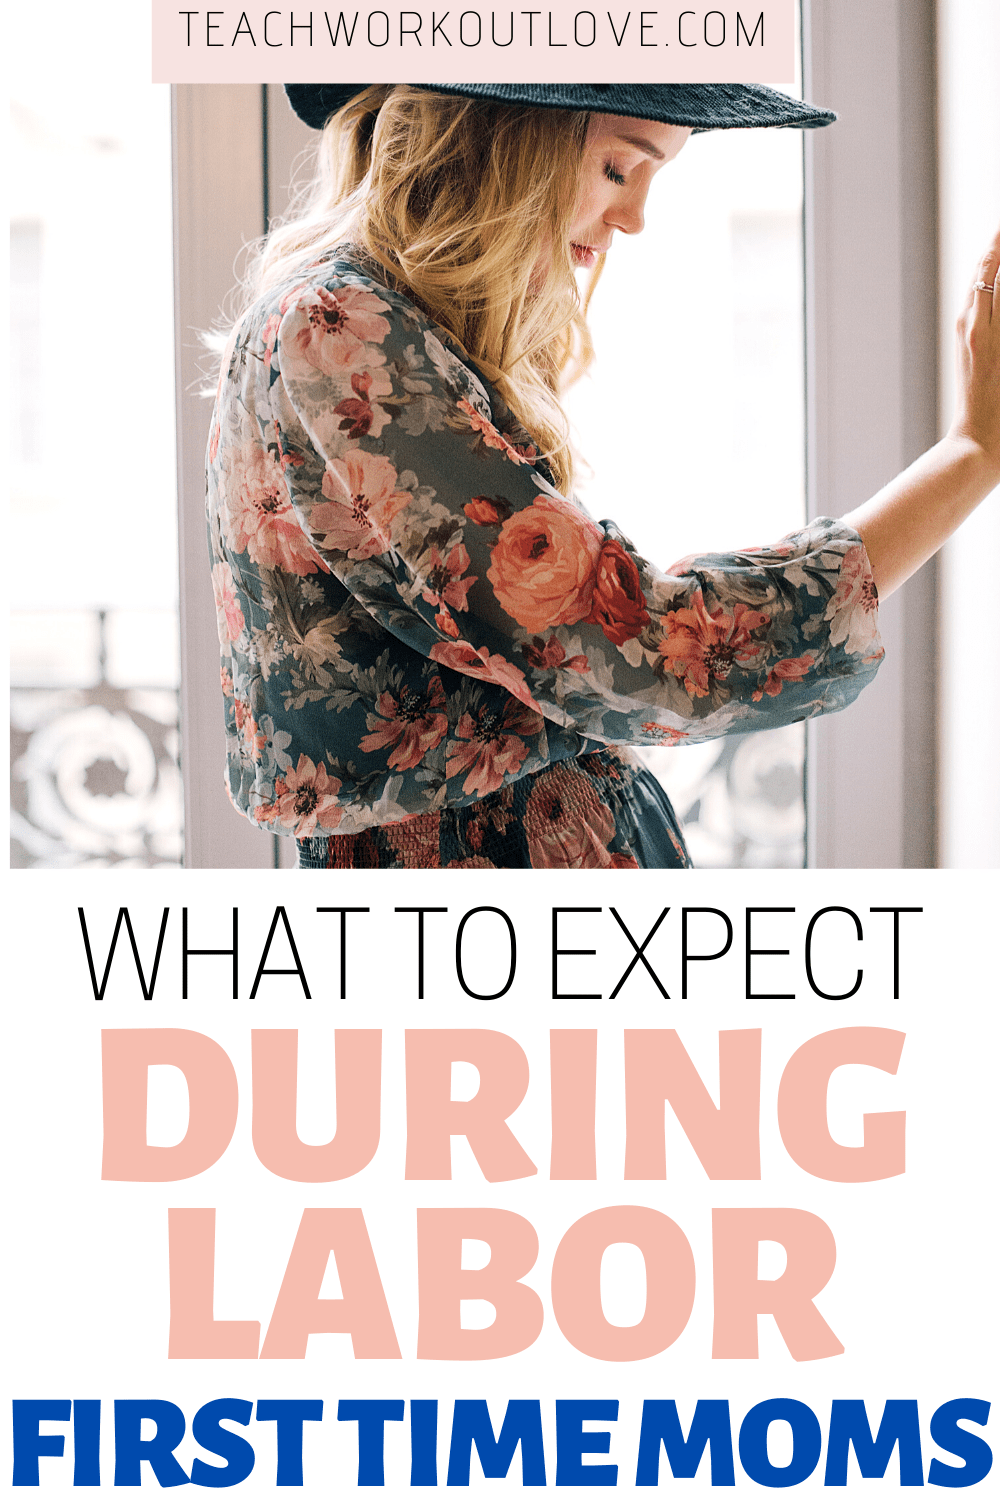 What to expect during labor for first-time moms is important in order for you to have an amazing birth experience. All the details about labor...